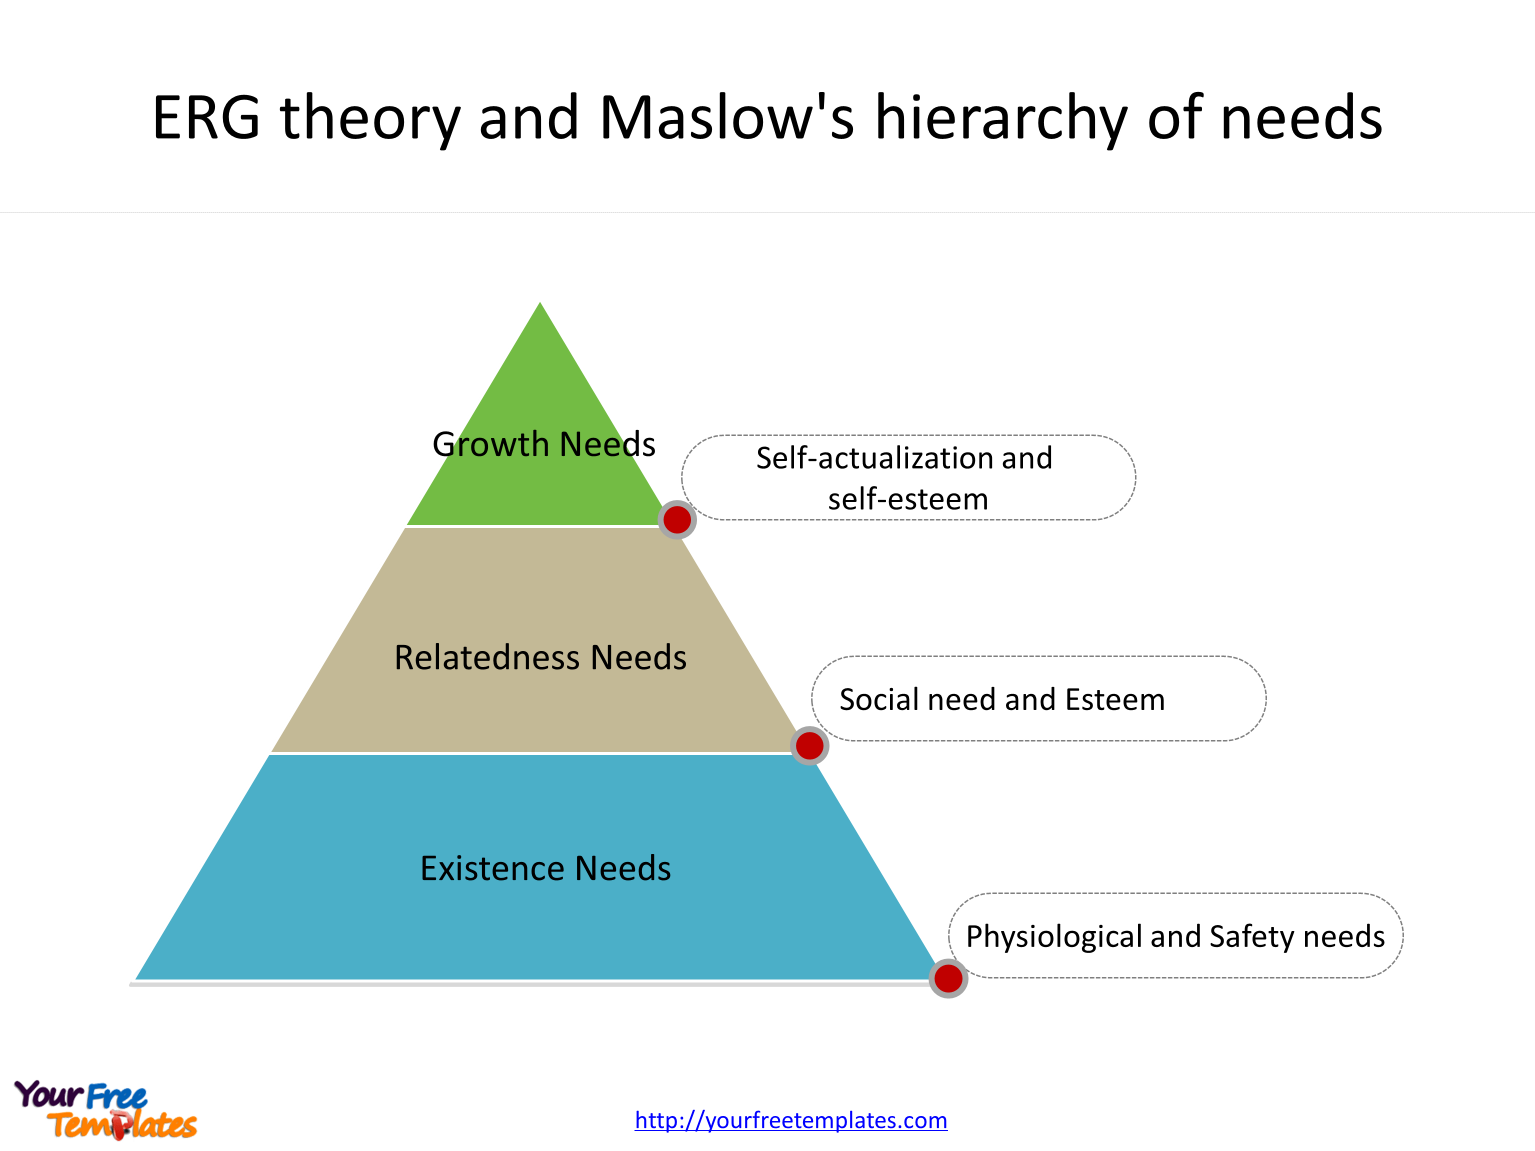 ERG theory fitted into Maslow's hierarchy of needs